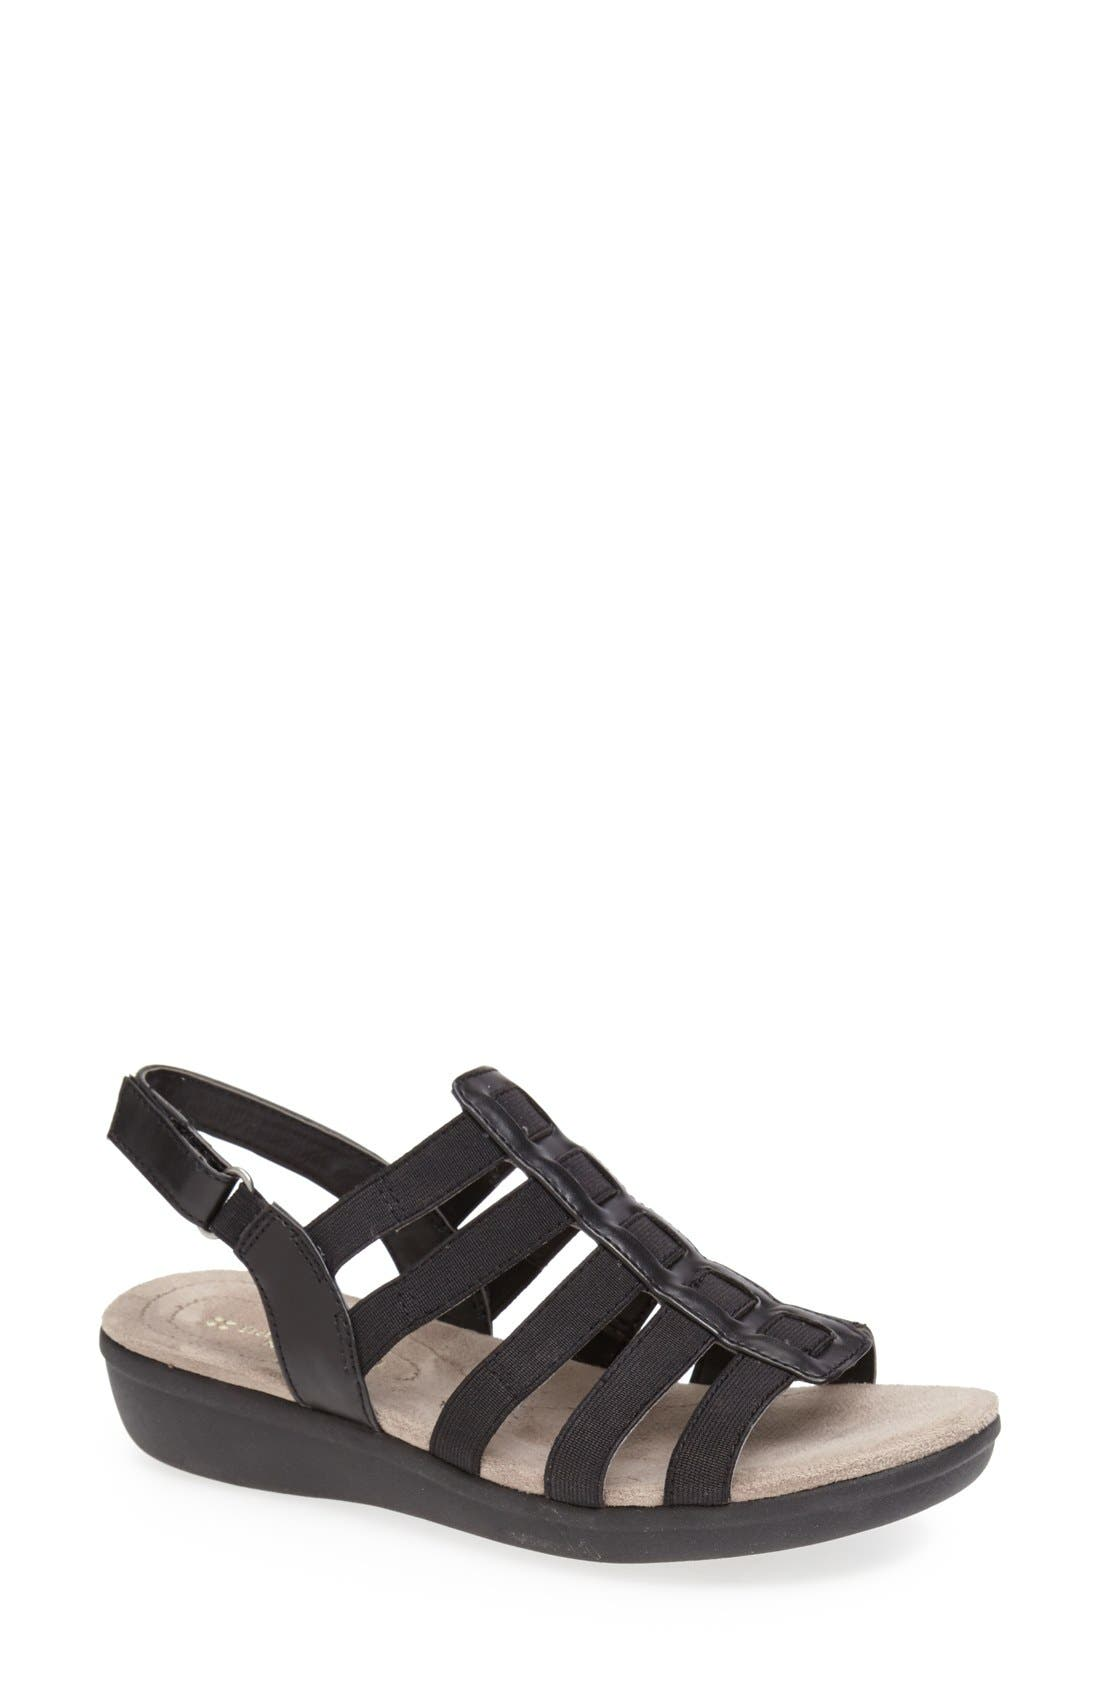 Alternate Image 1 Selected - Naturalizer 'Wyonna' Leather Sandal (Women)